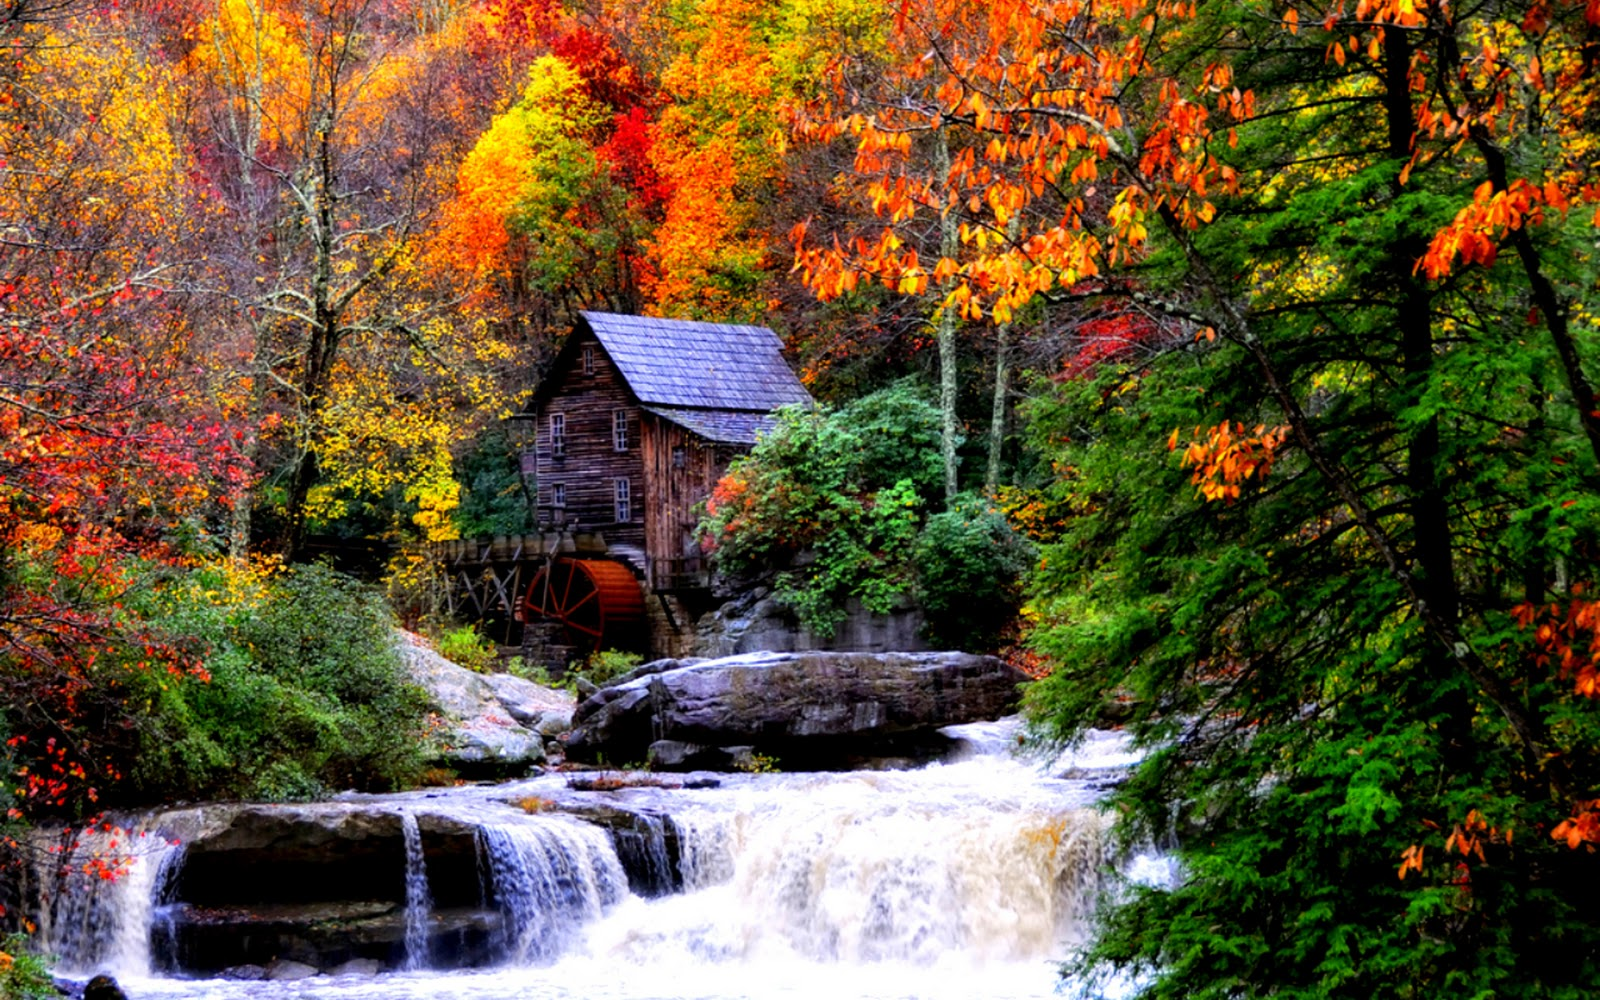 Wallpaper collections november 2011 - Free landscape backgrounds ...